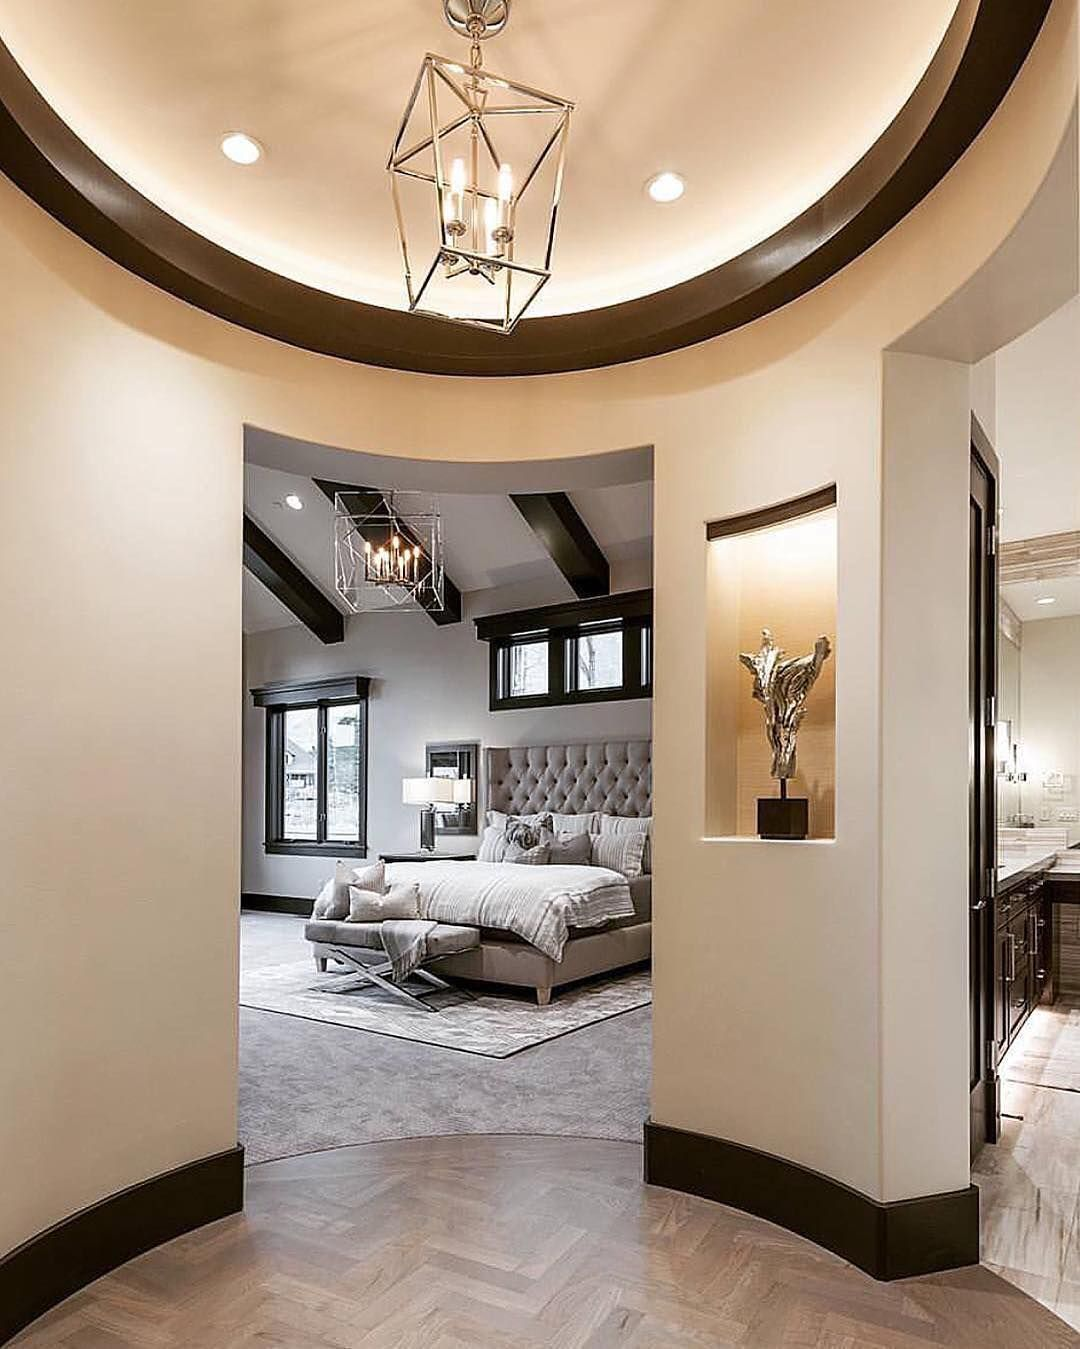 Spectacular Master Suite Entrance By Cameohomesinc Bedroom Goals